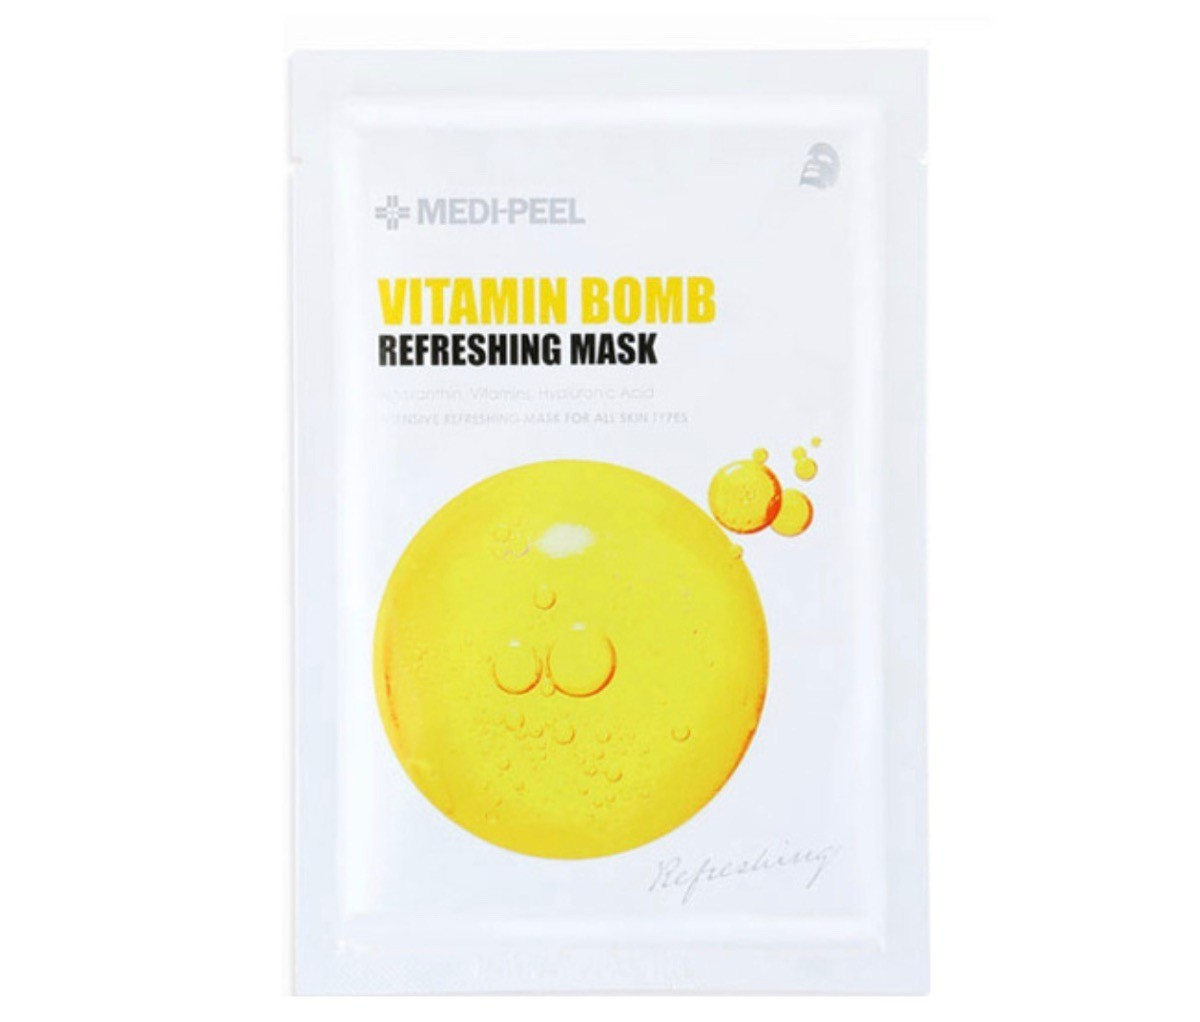 Маска MEDI-PEEL Vitamin Bomb Refreshing Mask